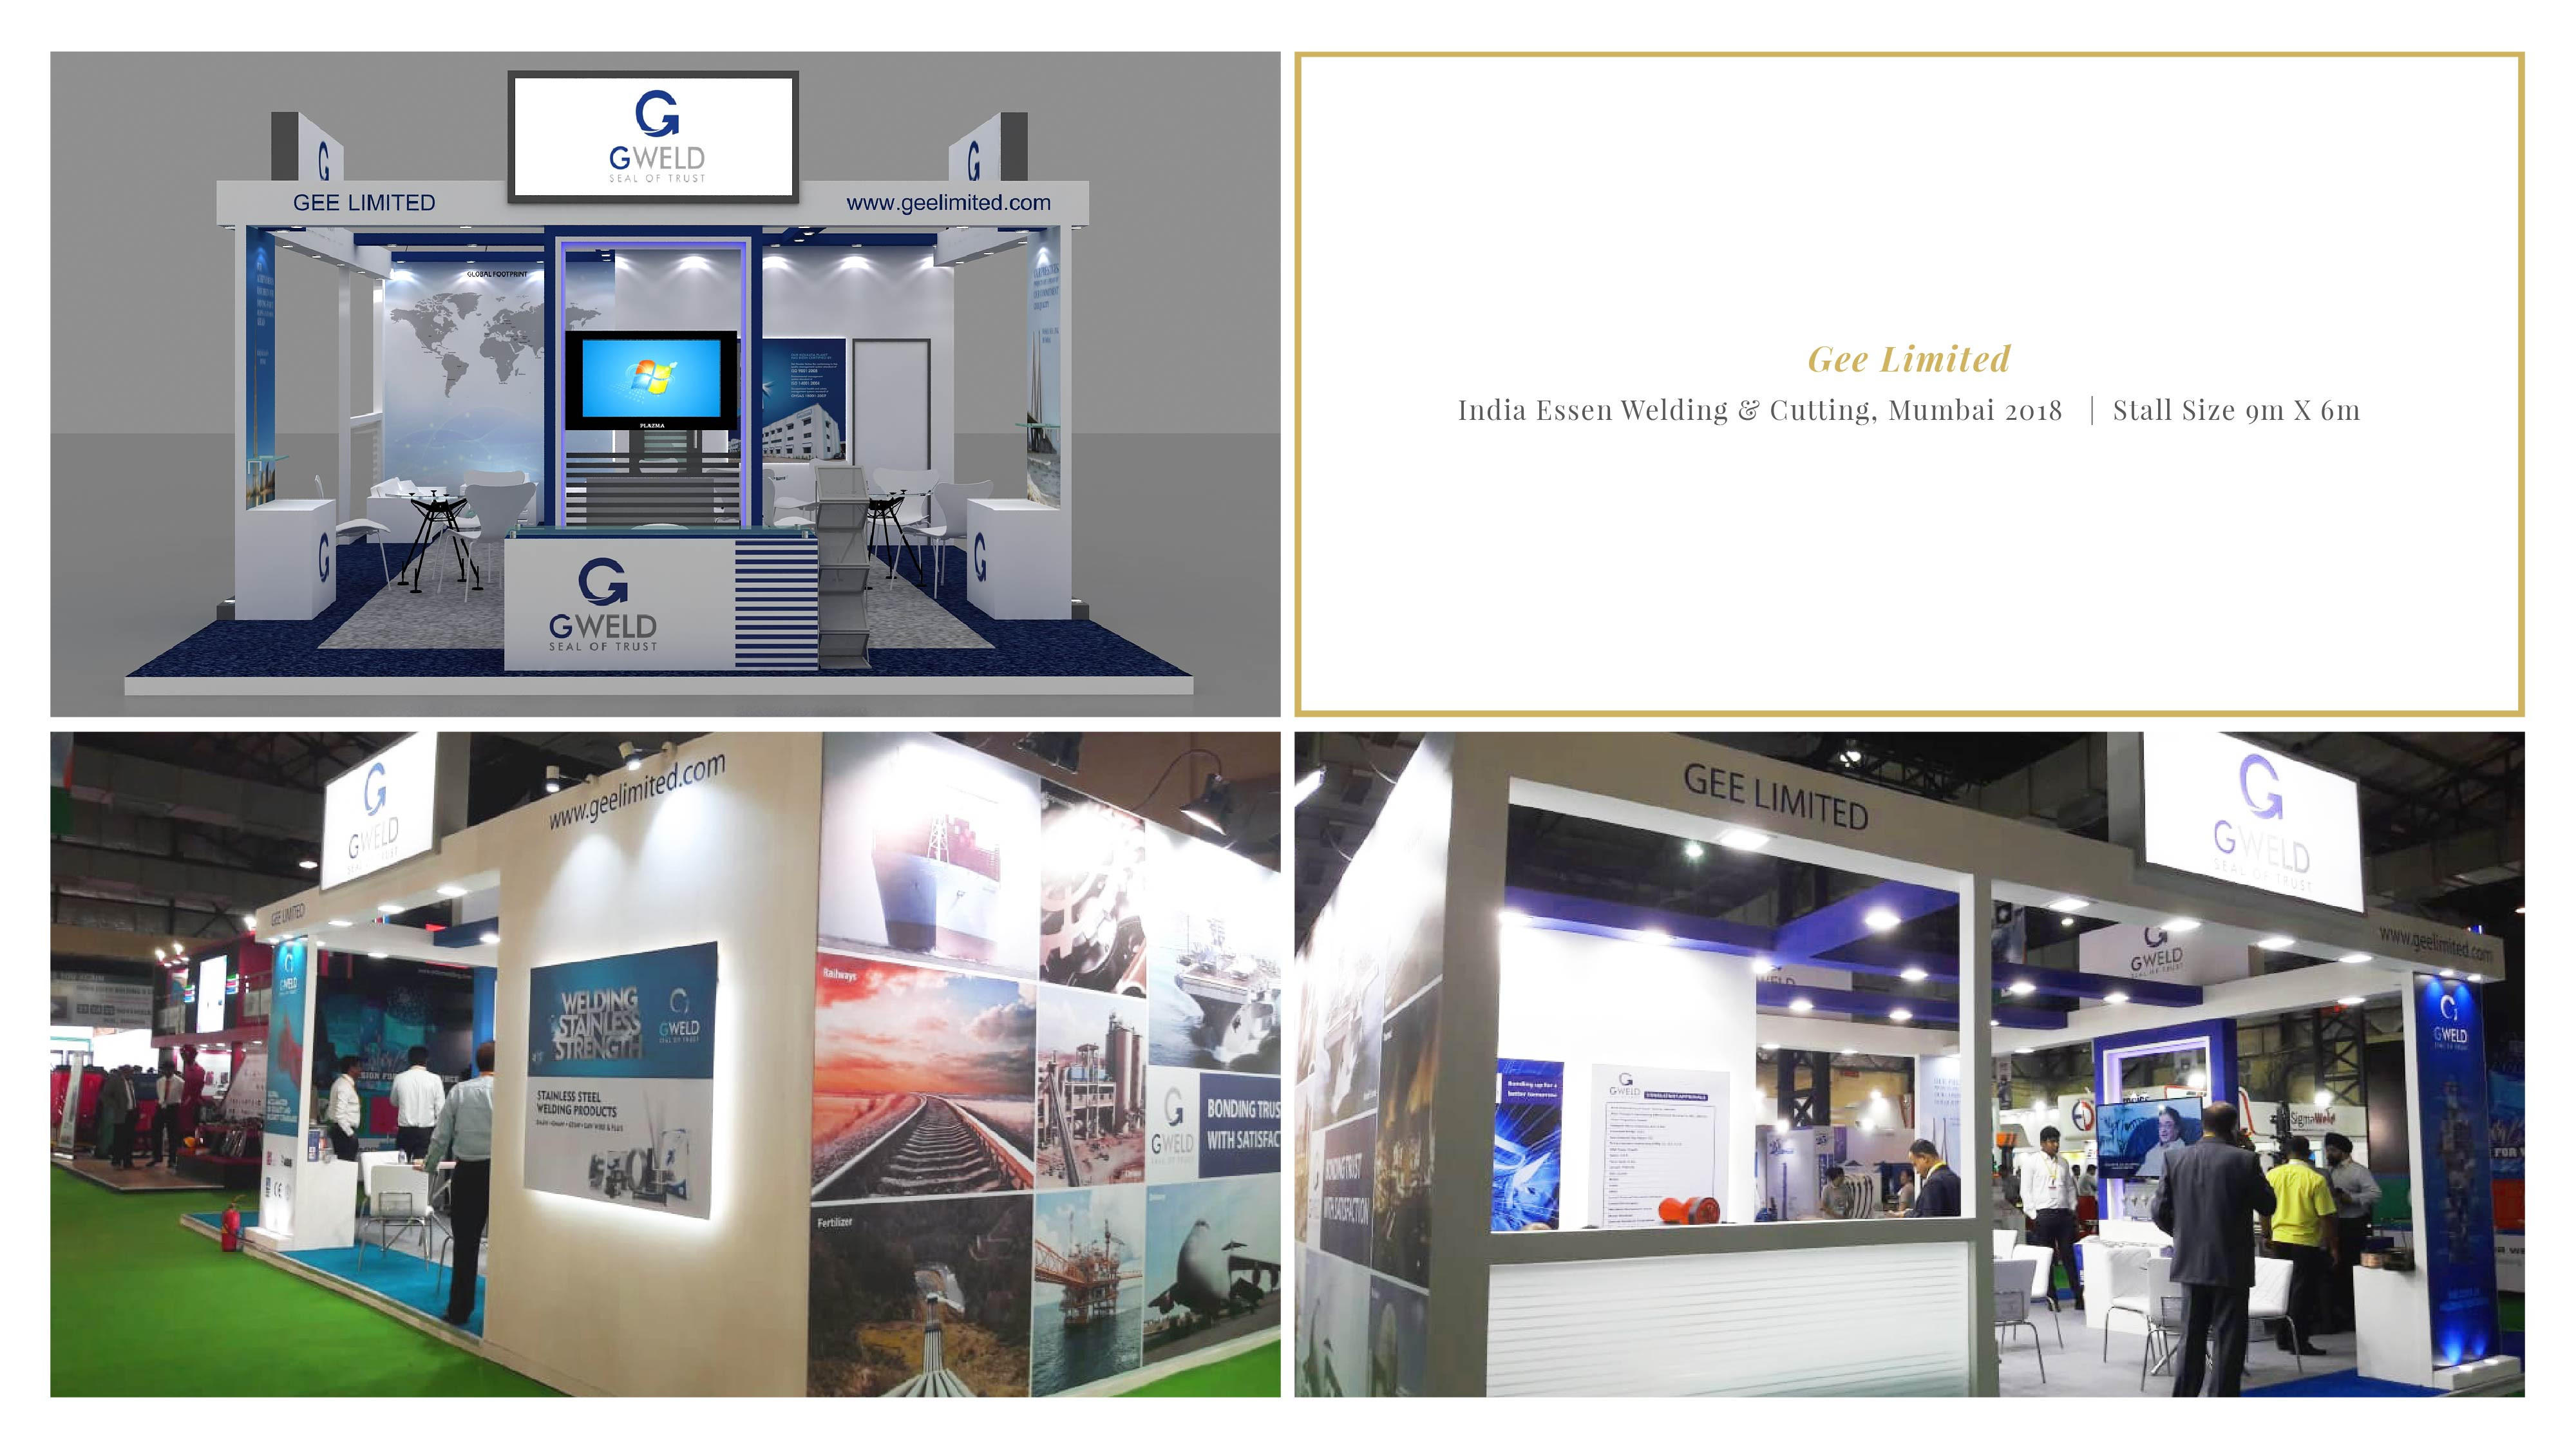 Gee Limited - India Essen Welding & Cutting 2018, Mumbai